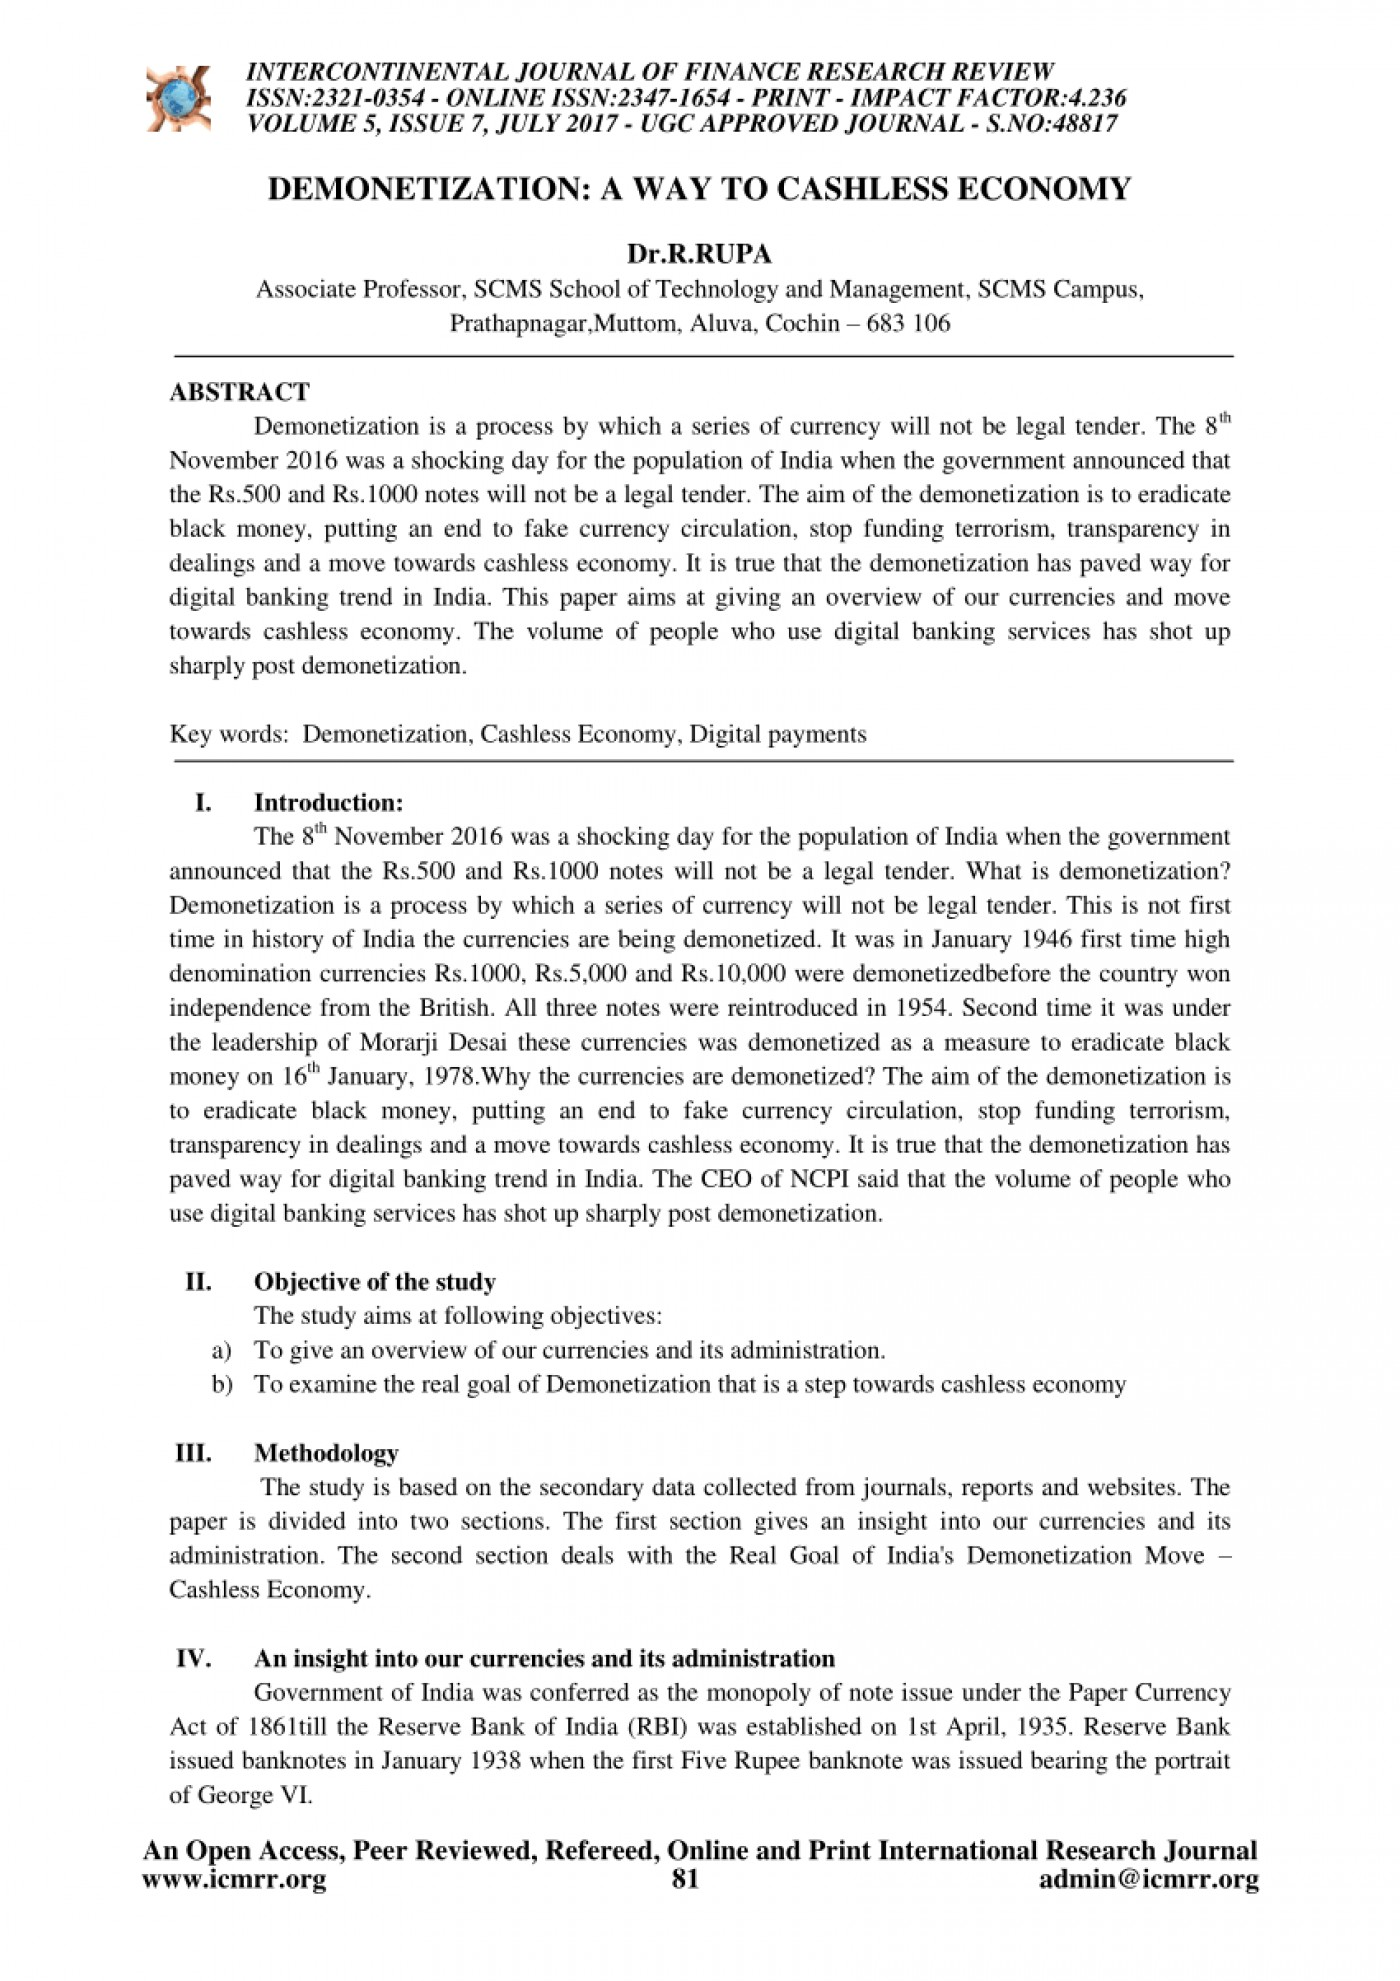 007 Cash To Cashless Economy Research Paper Rare 1400